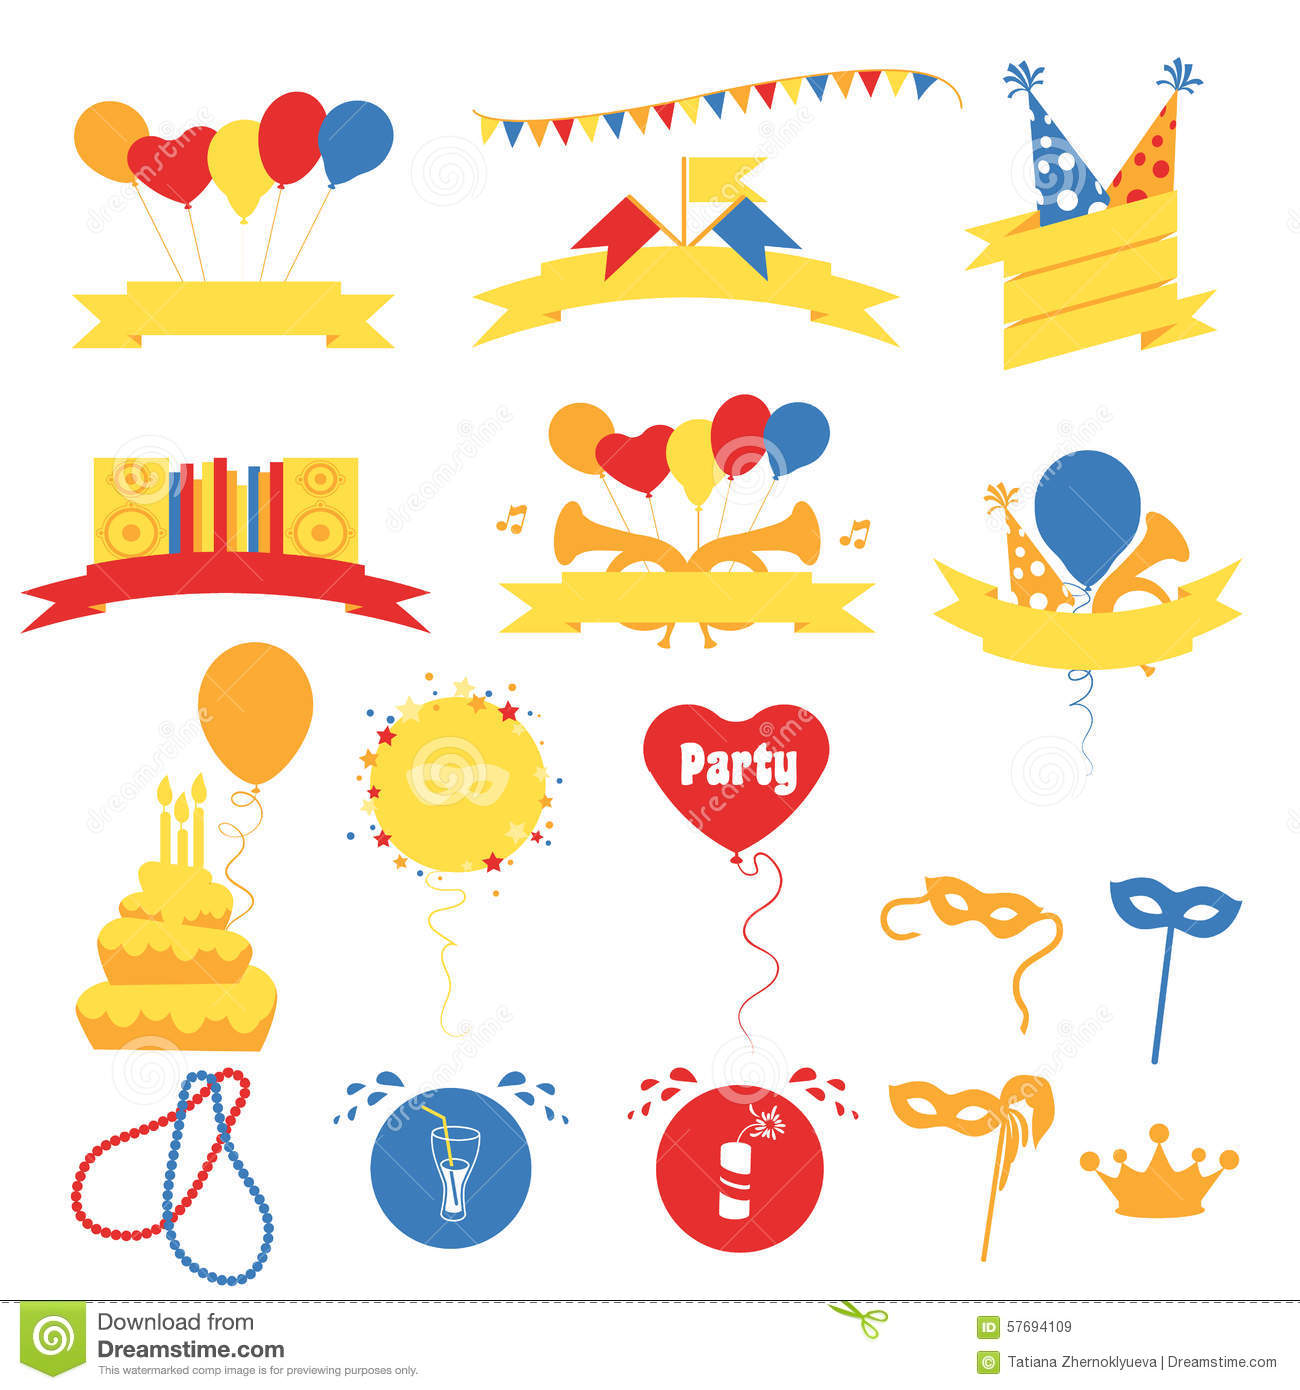 Birthday Party Celebration Banners, Flat Vector